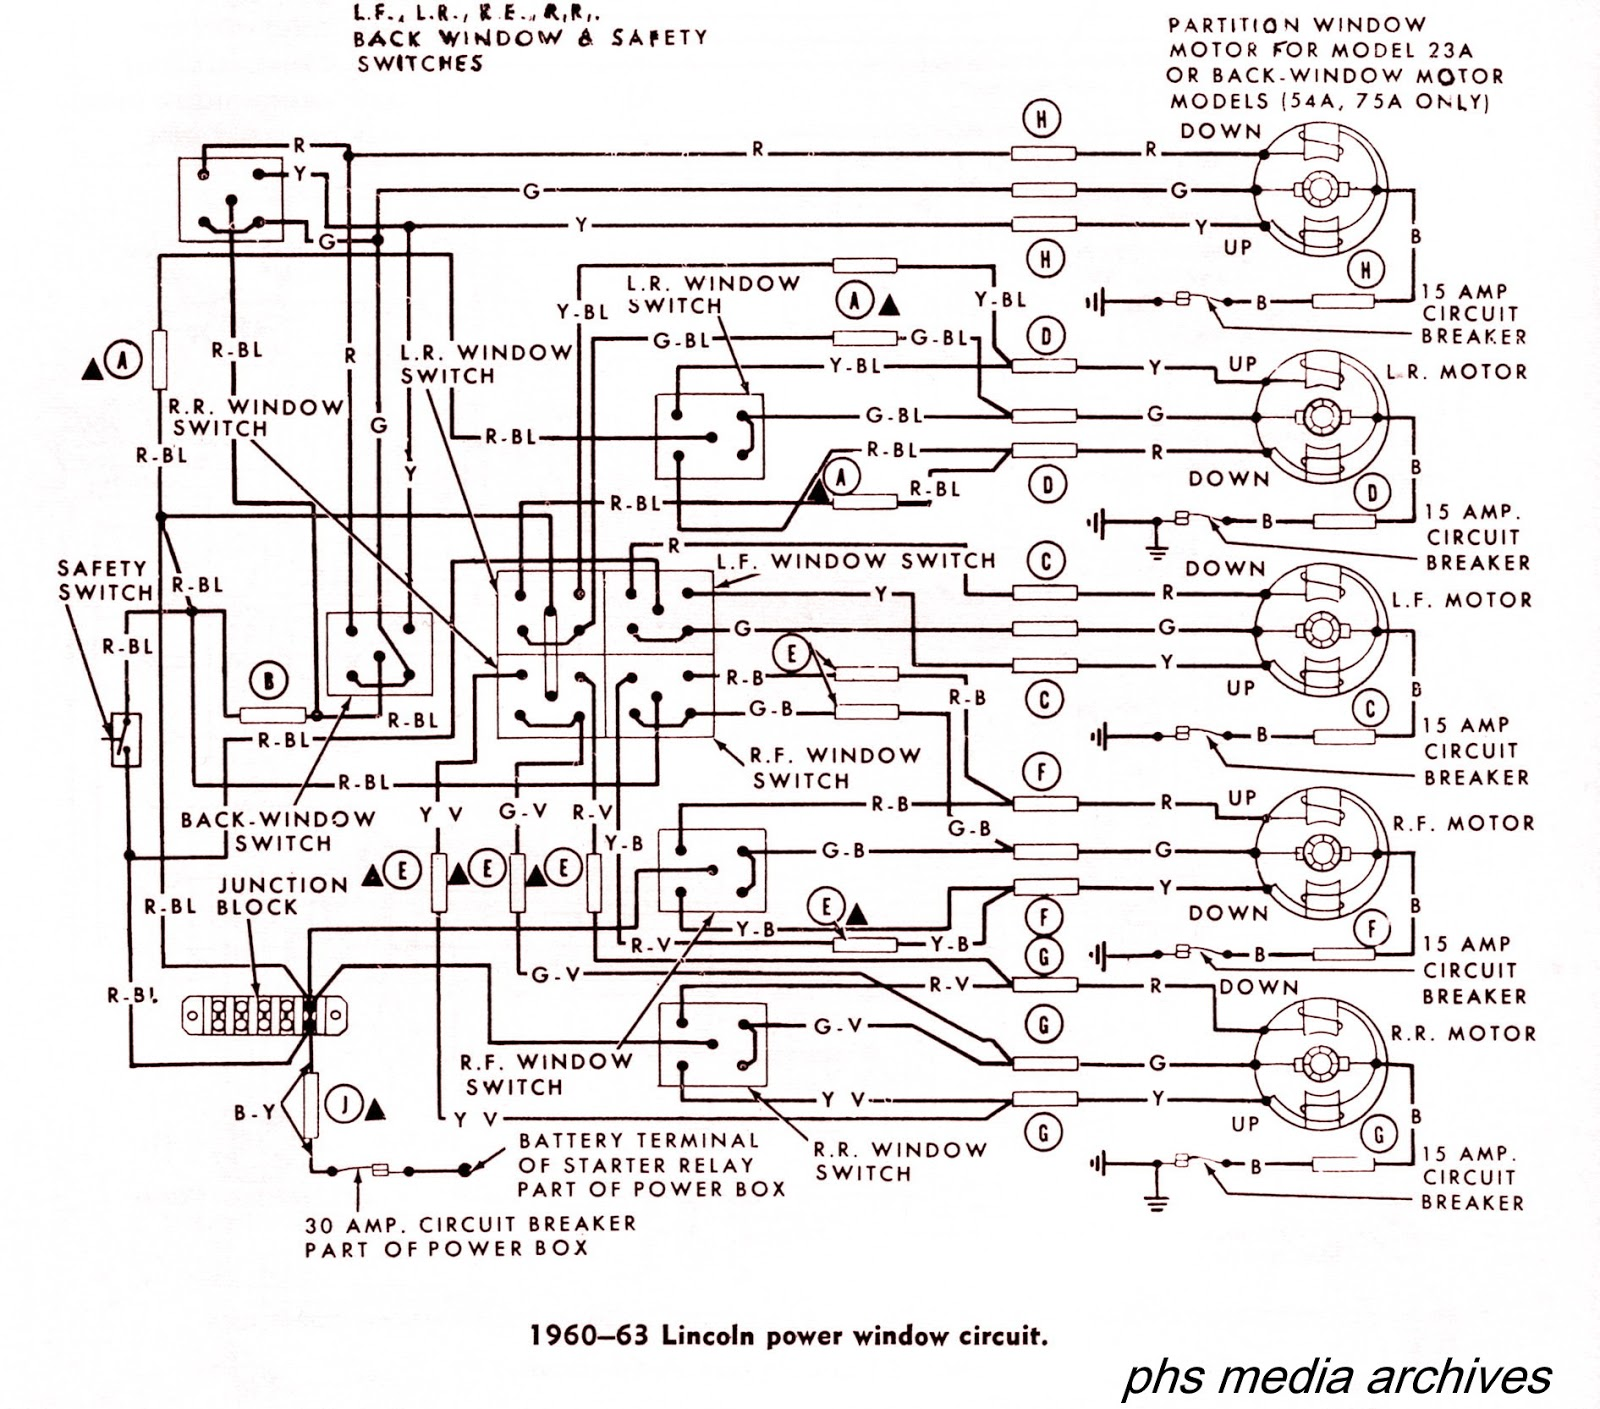 tech series 1960 1964 lincoln wiring diagrams phscollectorcarworld